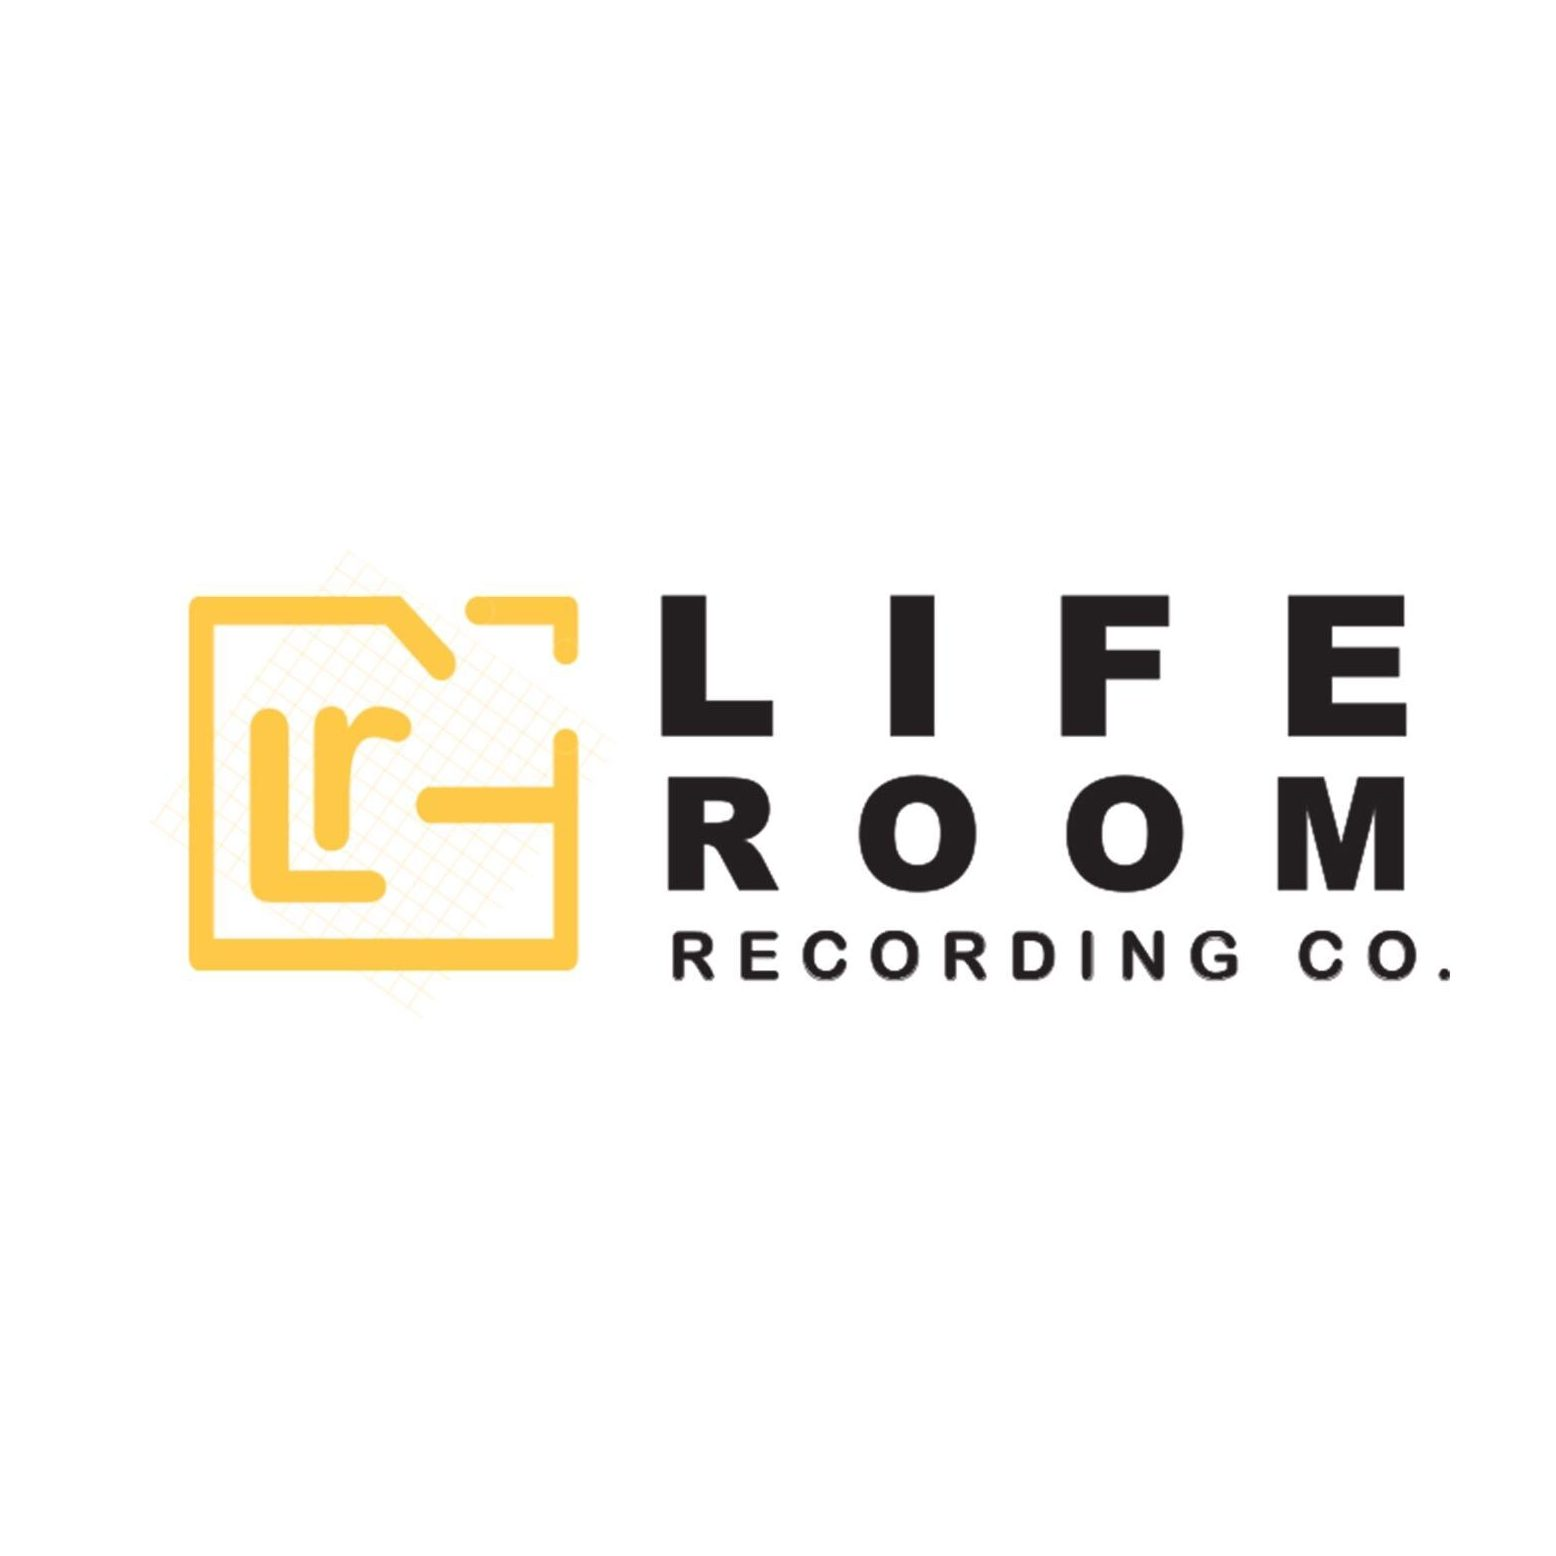 RCA INSPIRATION RELEASES NEW MUSIC FROM RISING STAR DOE UNDER A PARTNERSHIP WITH JONATHAN MCREYNOLDS' LIFE ROOM LABEL